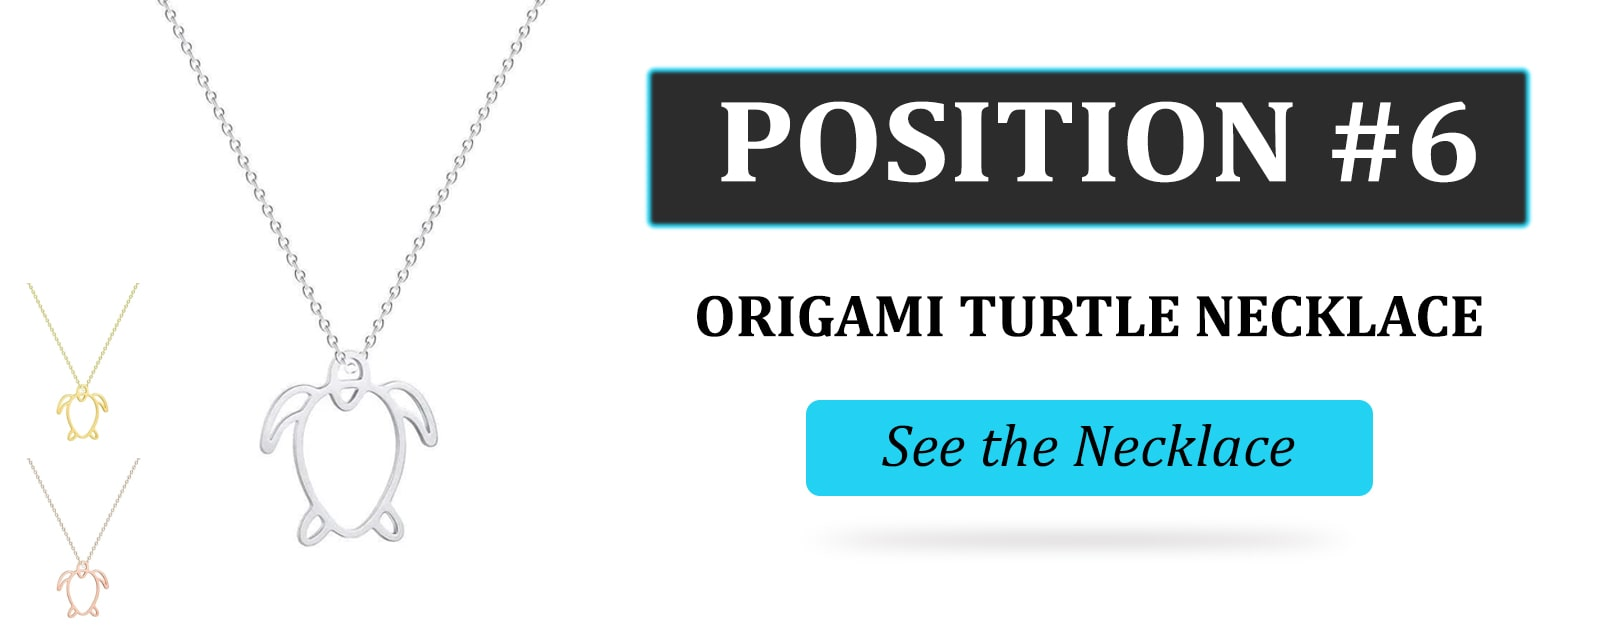 ORIGAMI TURTLE NECKLACE